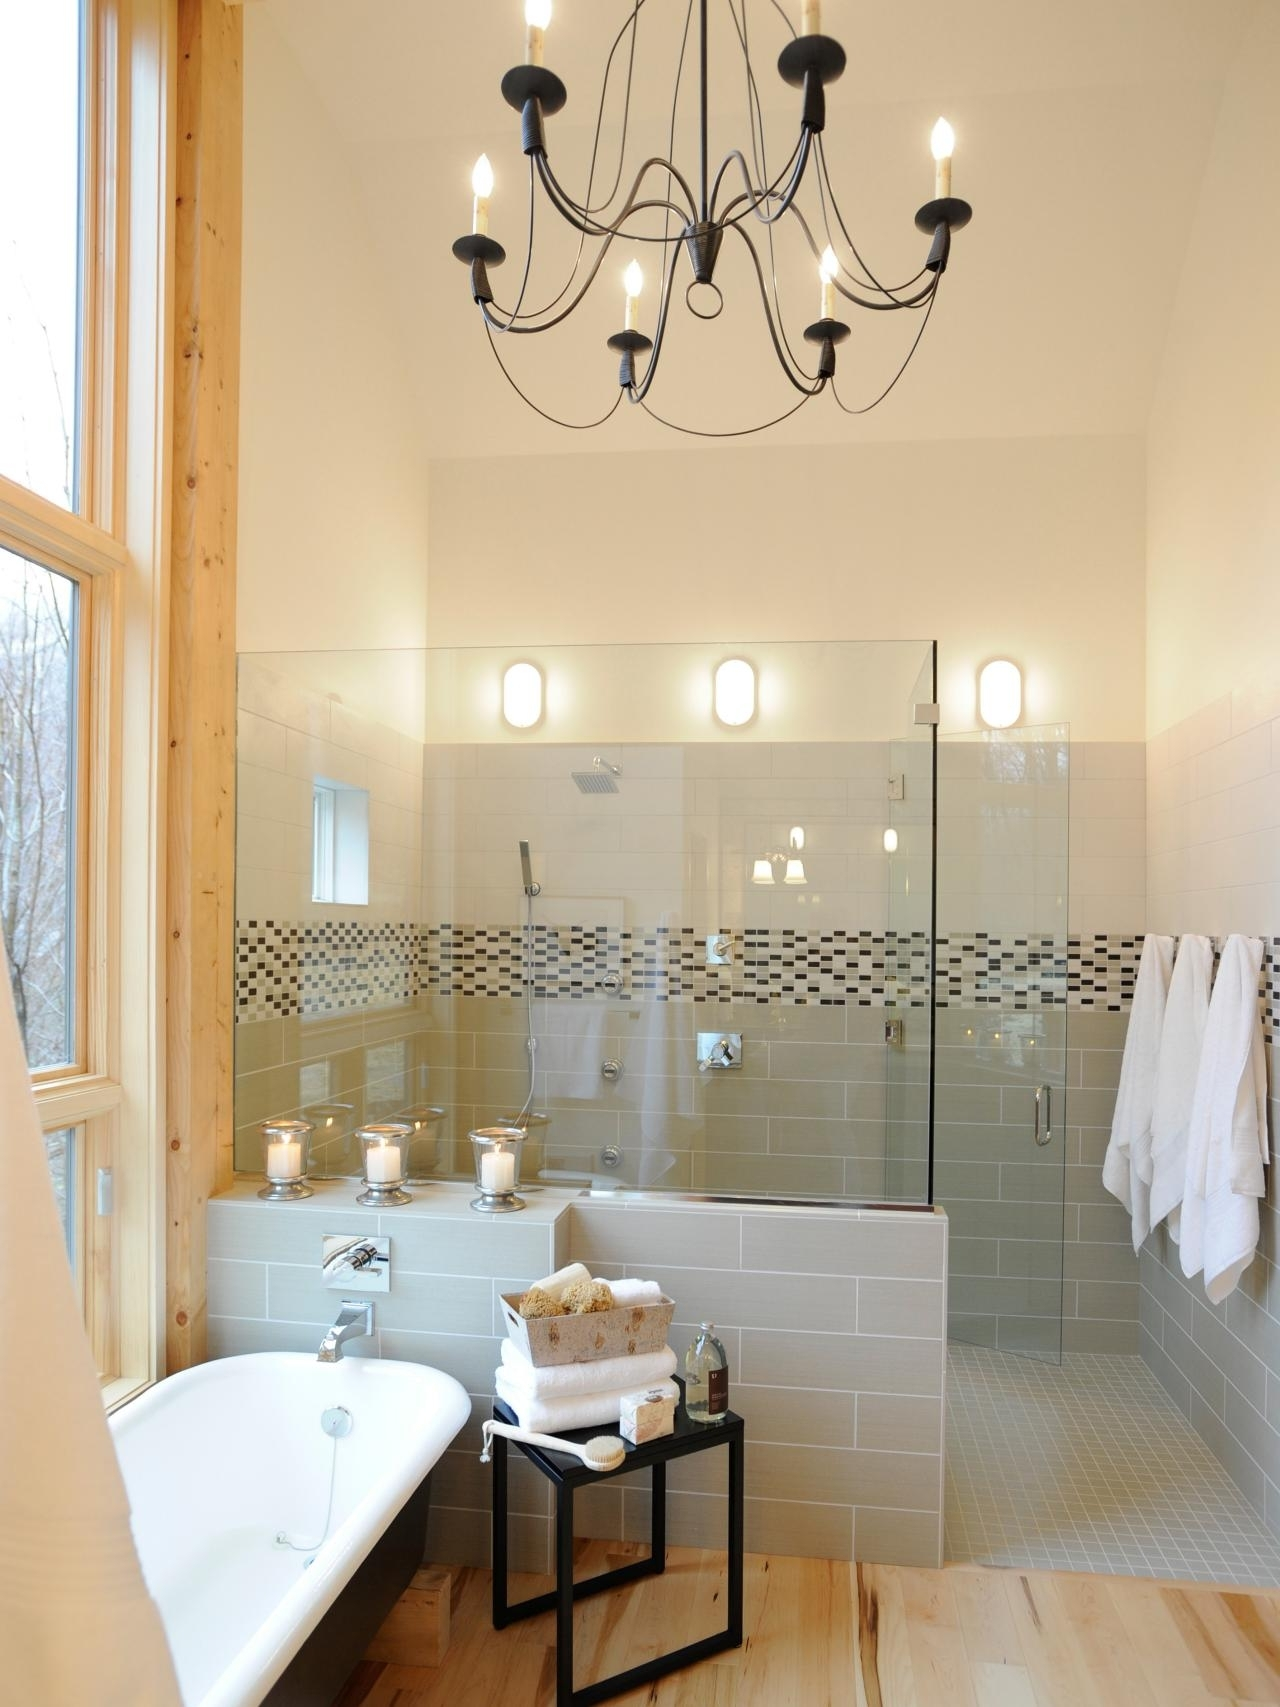 Chandelier Bathroom Lighting Fixtures With Best And Newest Wood Chandelier Candle Chandelier Dining Room Light Fixtures Glass (View 9 of 15)